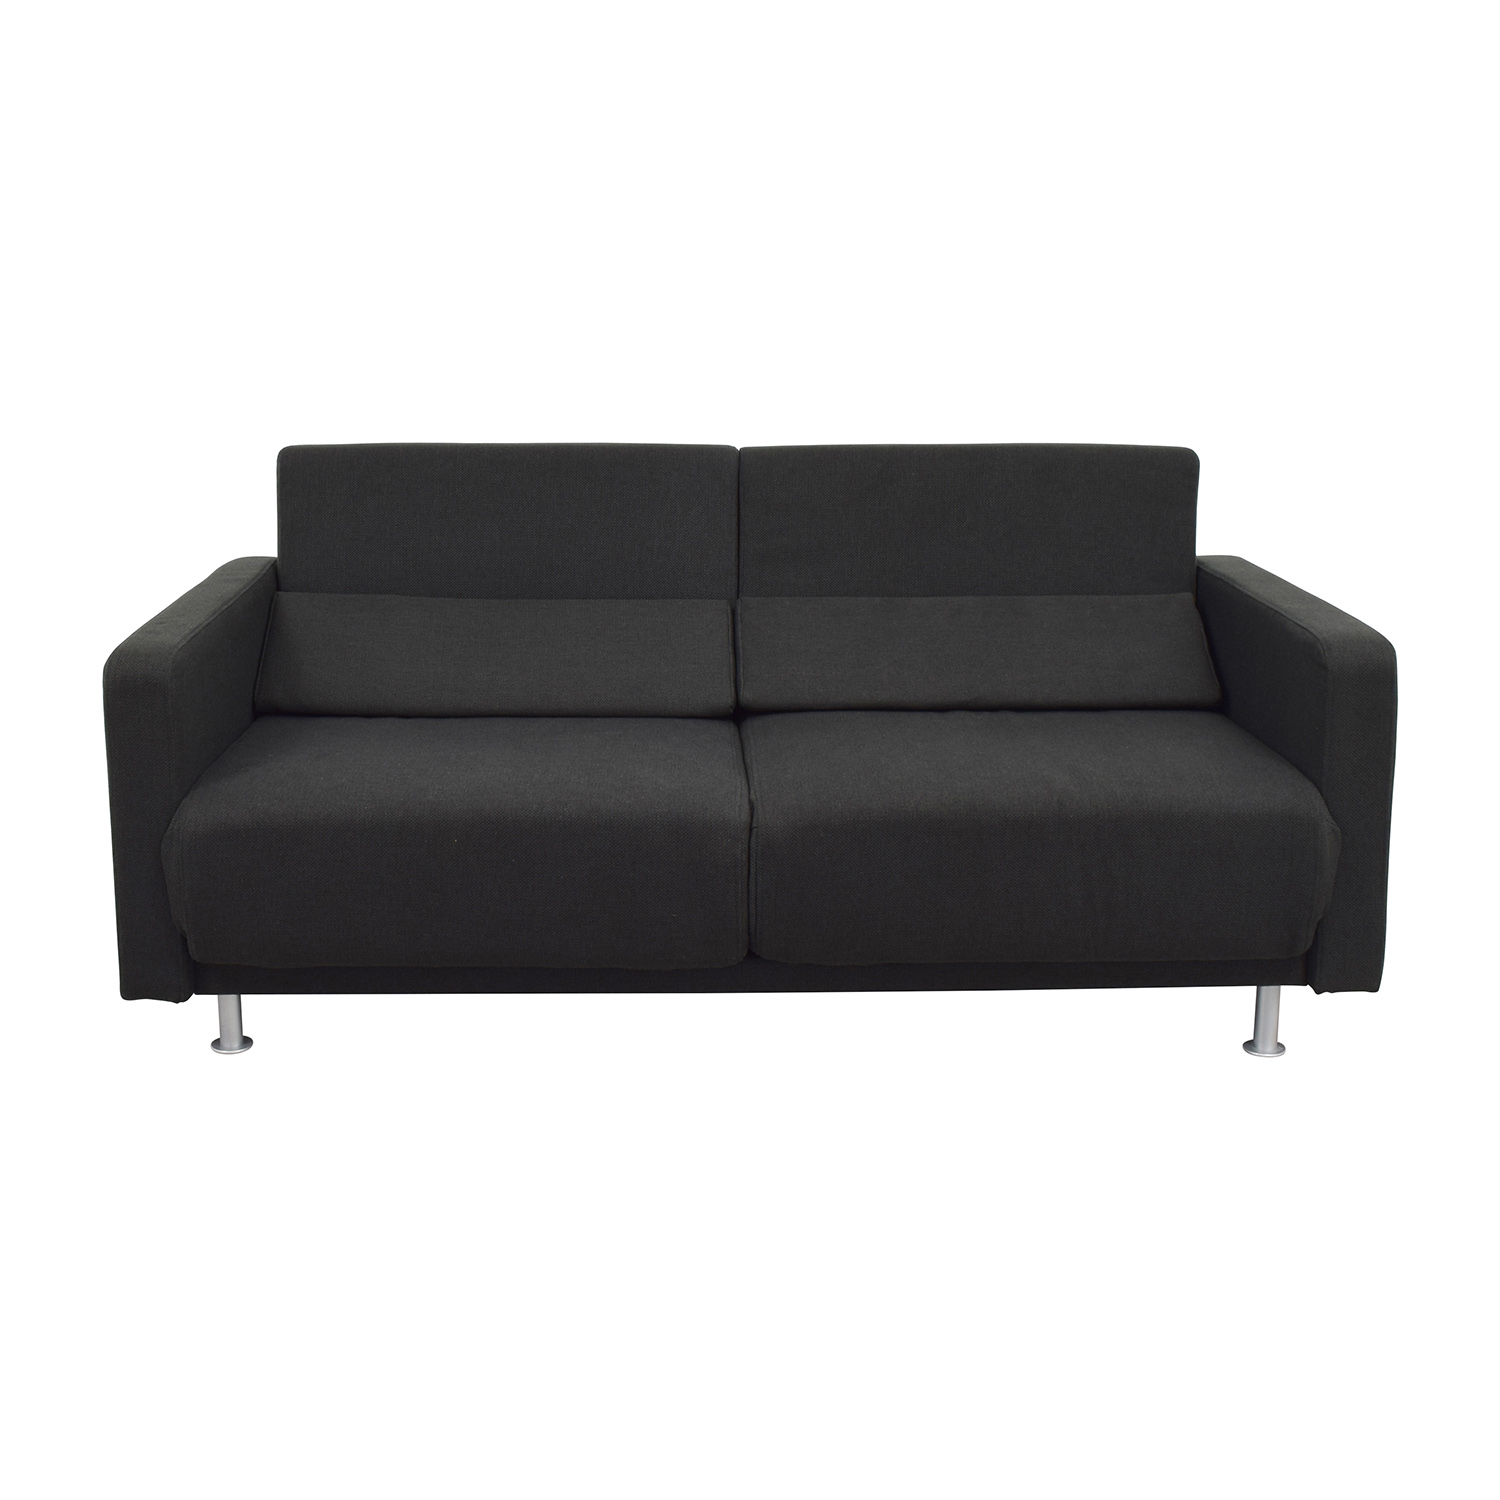 boconcept sleeper sofa review modular leather melbourne bed home co